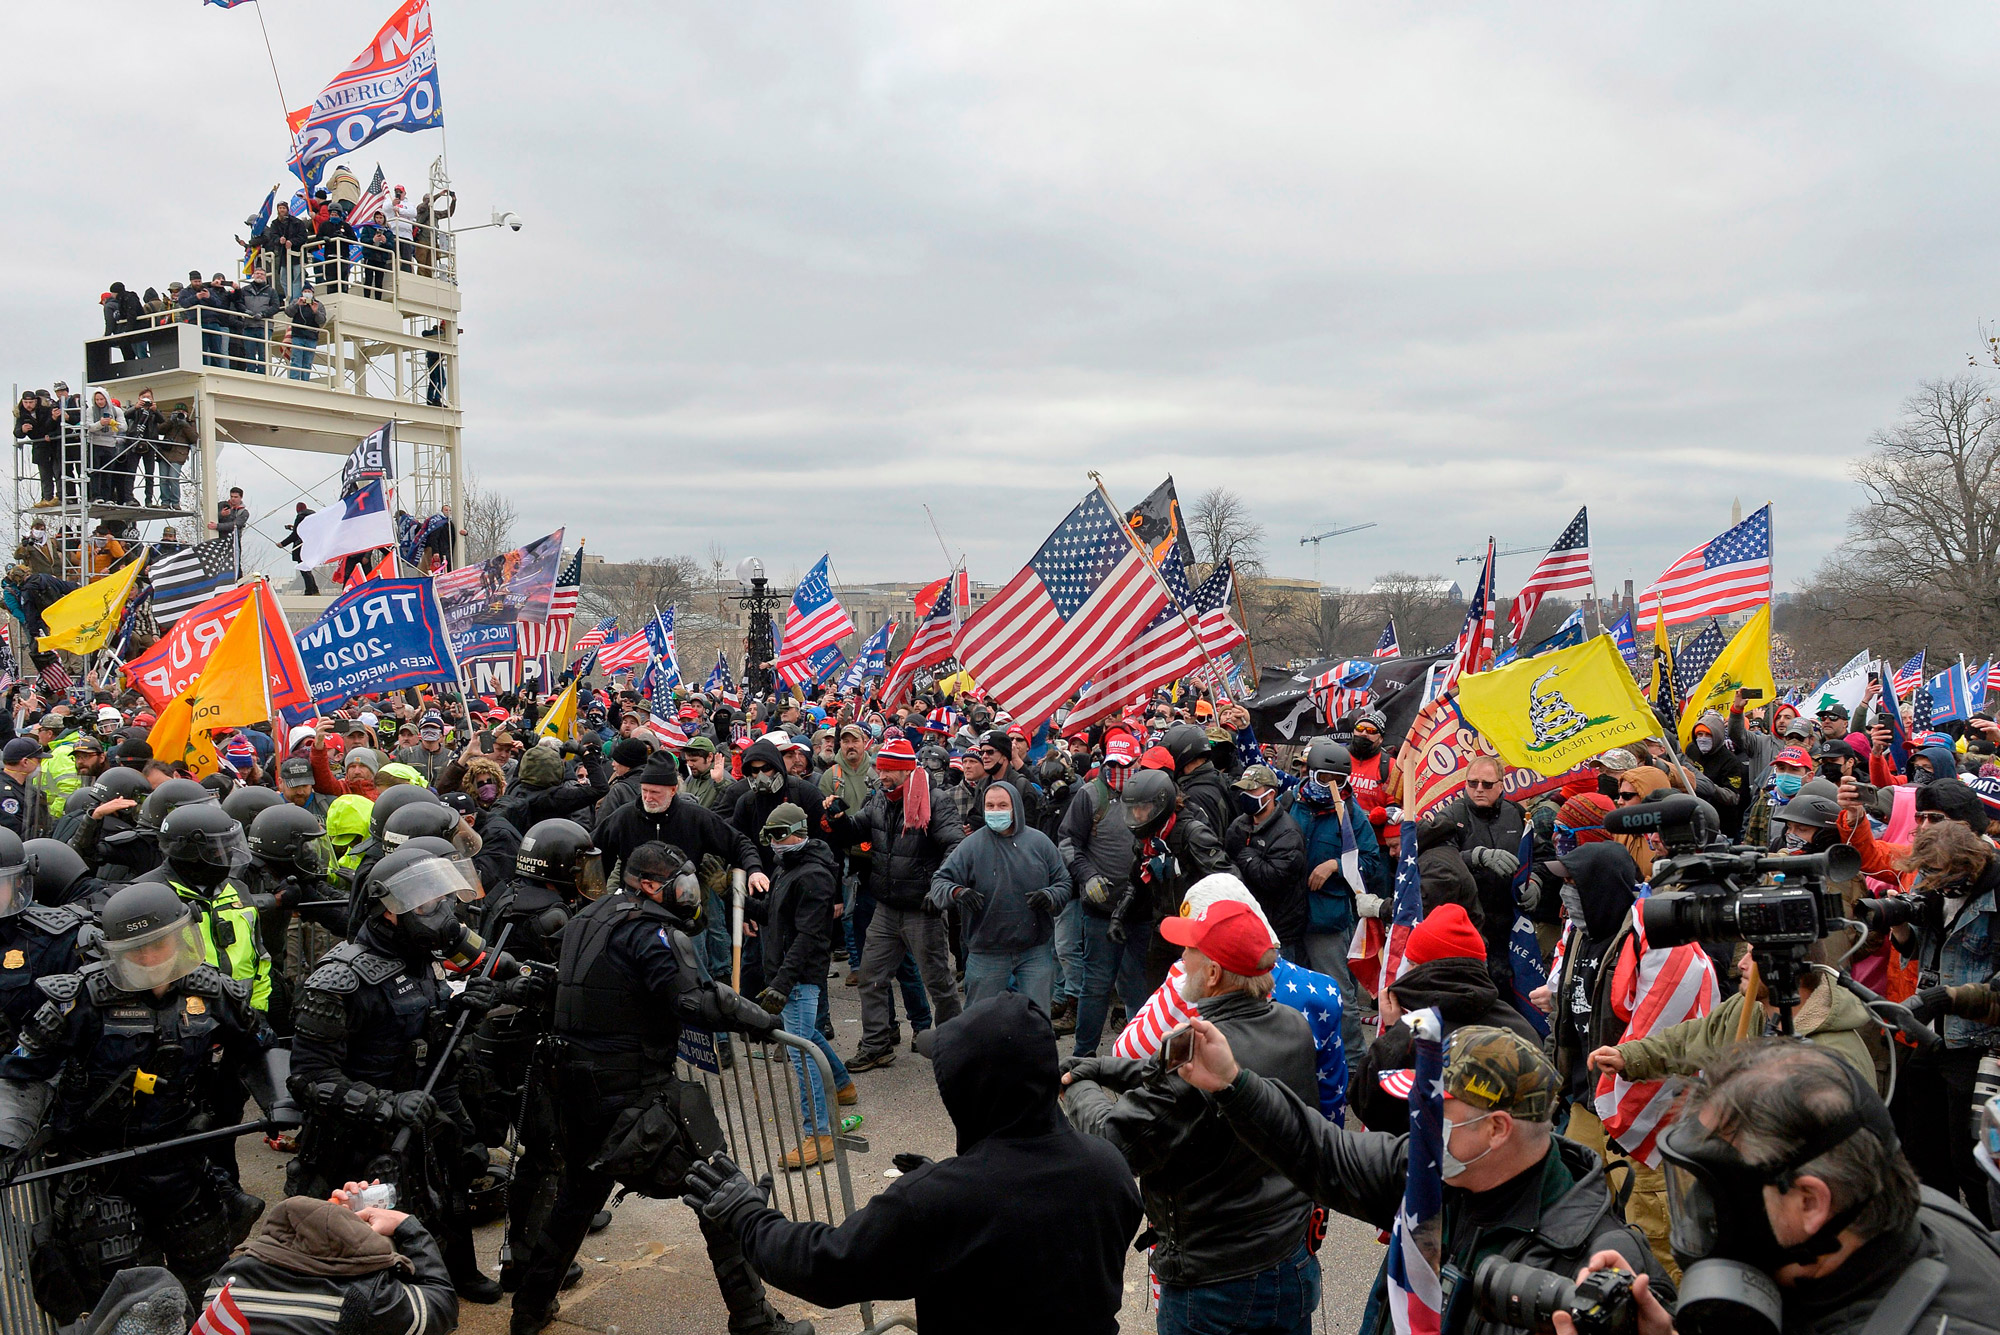 A photo of a mob of rioters clashing with police in front of the US Capitol on January 6, 2020